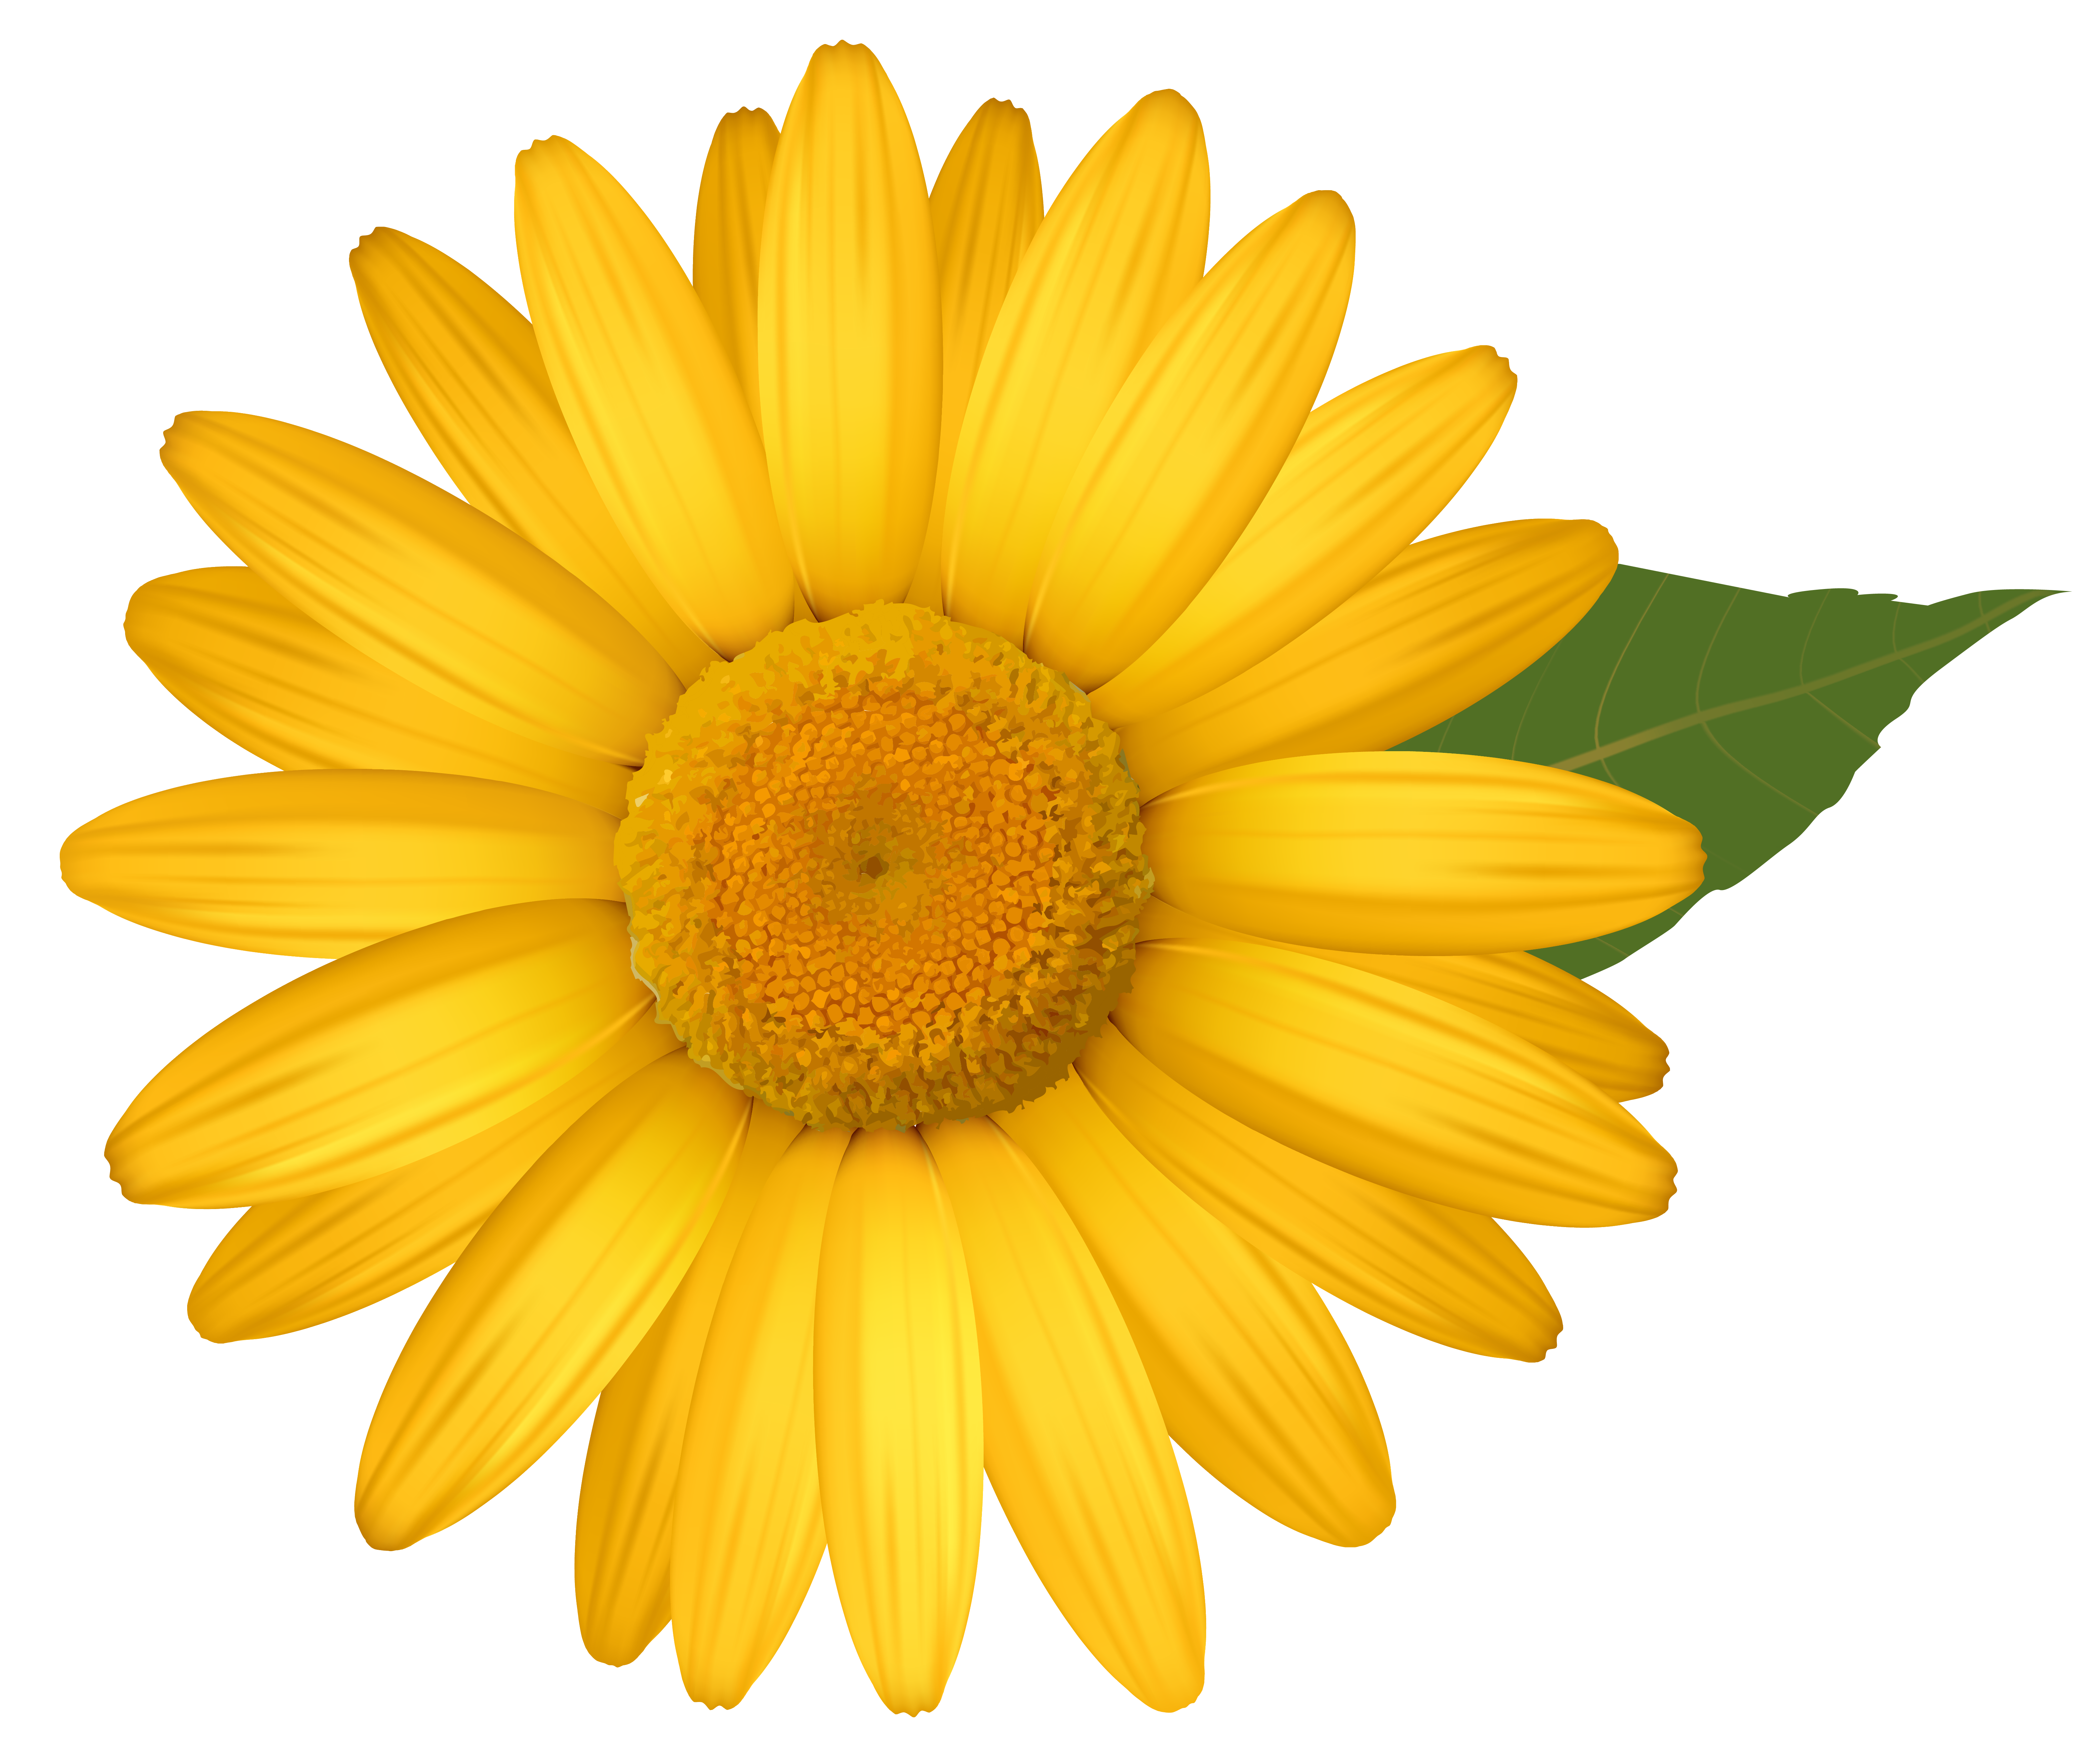 Daisy clipart png. Yellow image gallery yopriceville